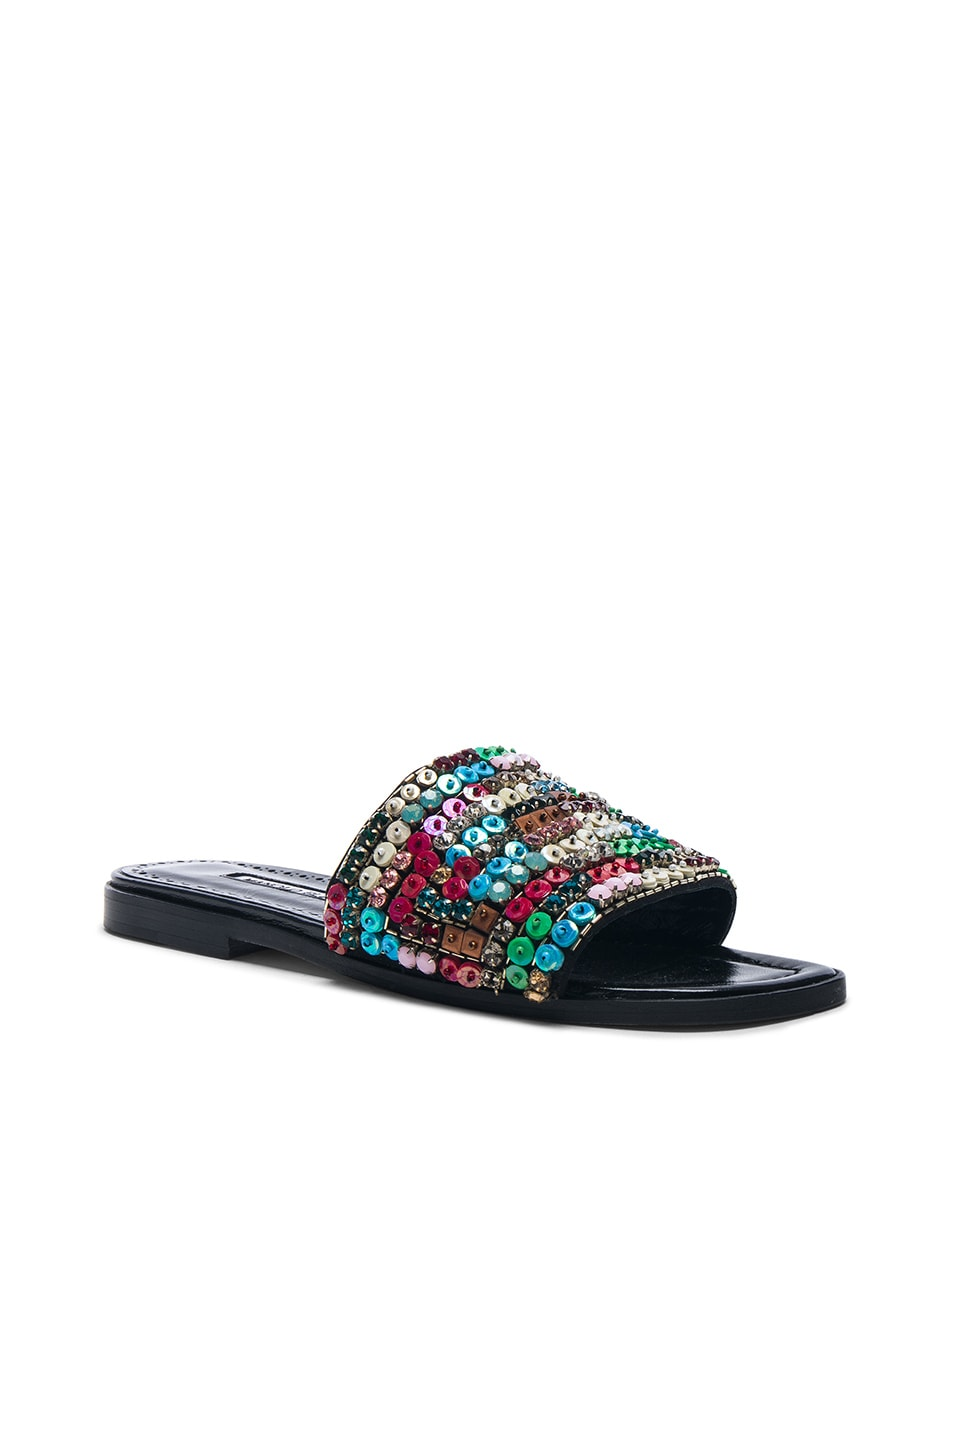 Image 2 of Manolo Blahnik Gioiosa Slide in Black & Multi